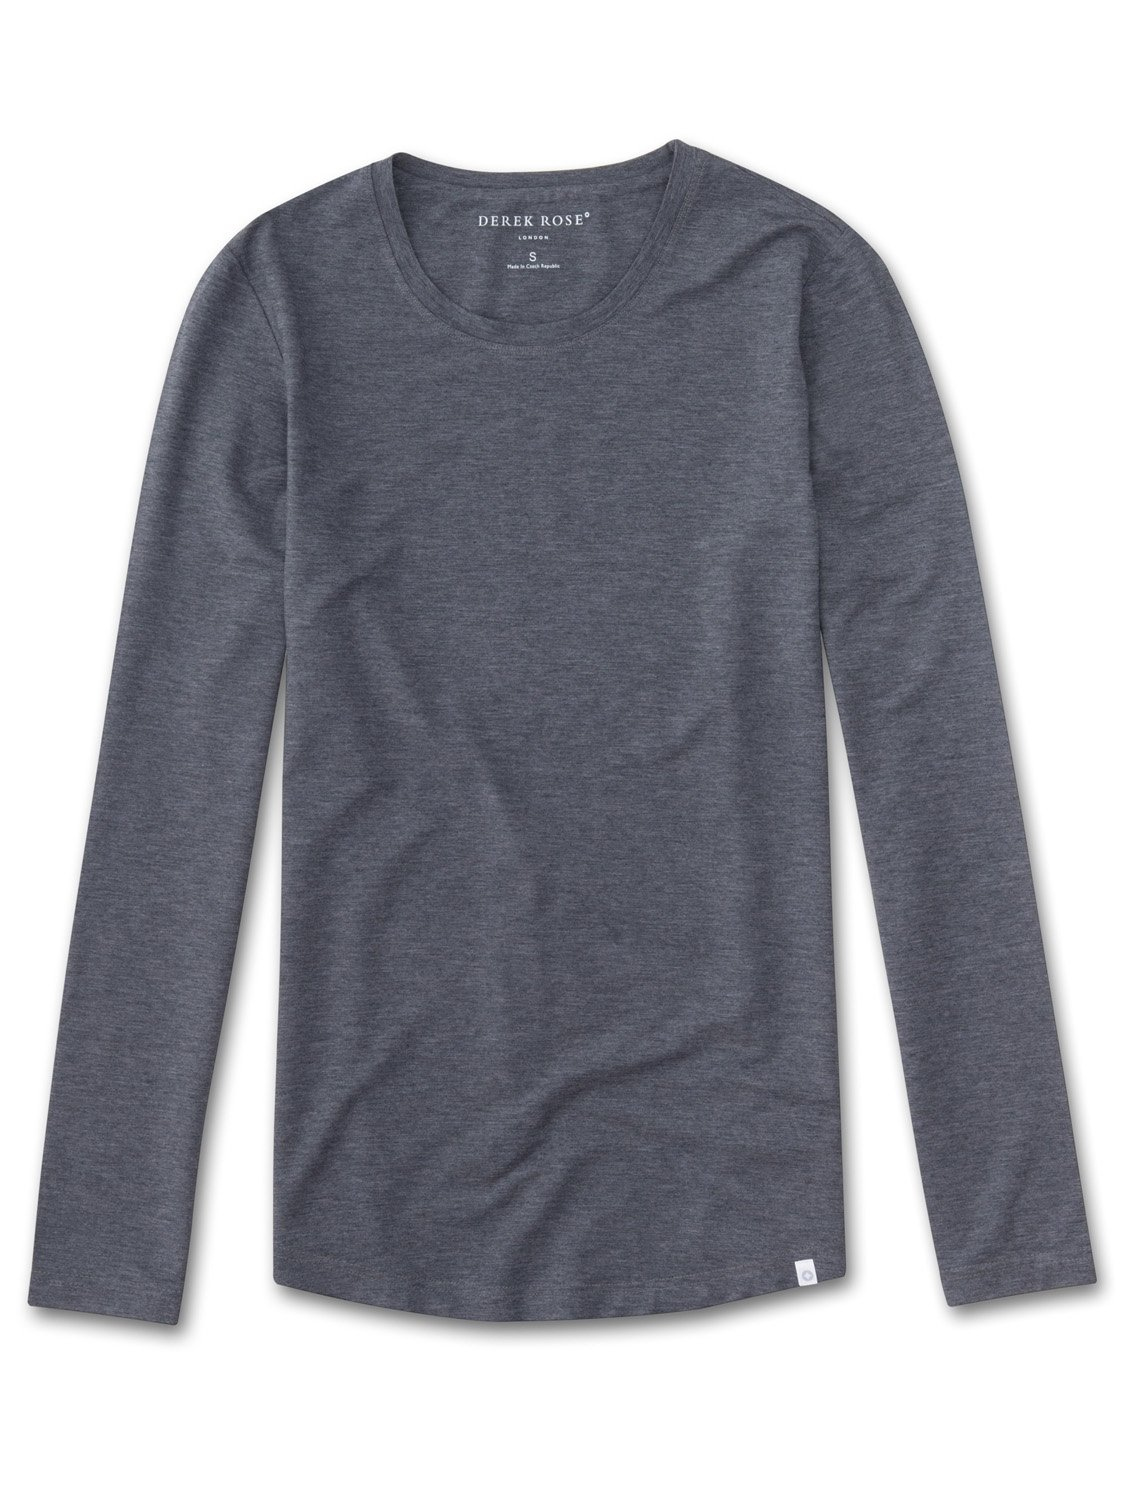 Women's Long Sleeve T-Shirt Ethan 2 Micro Modal Stretch Charcoal